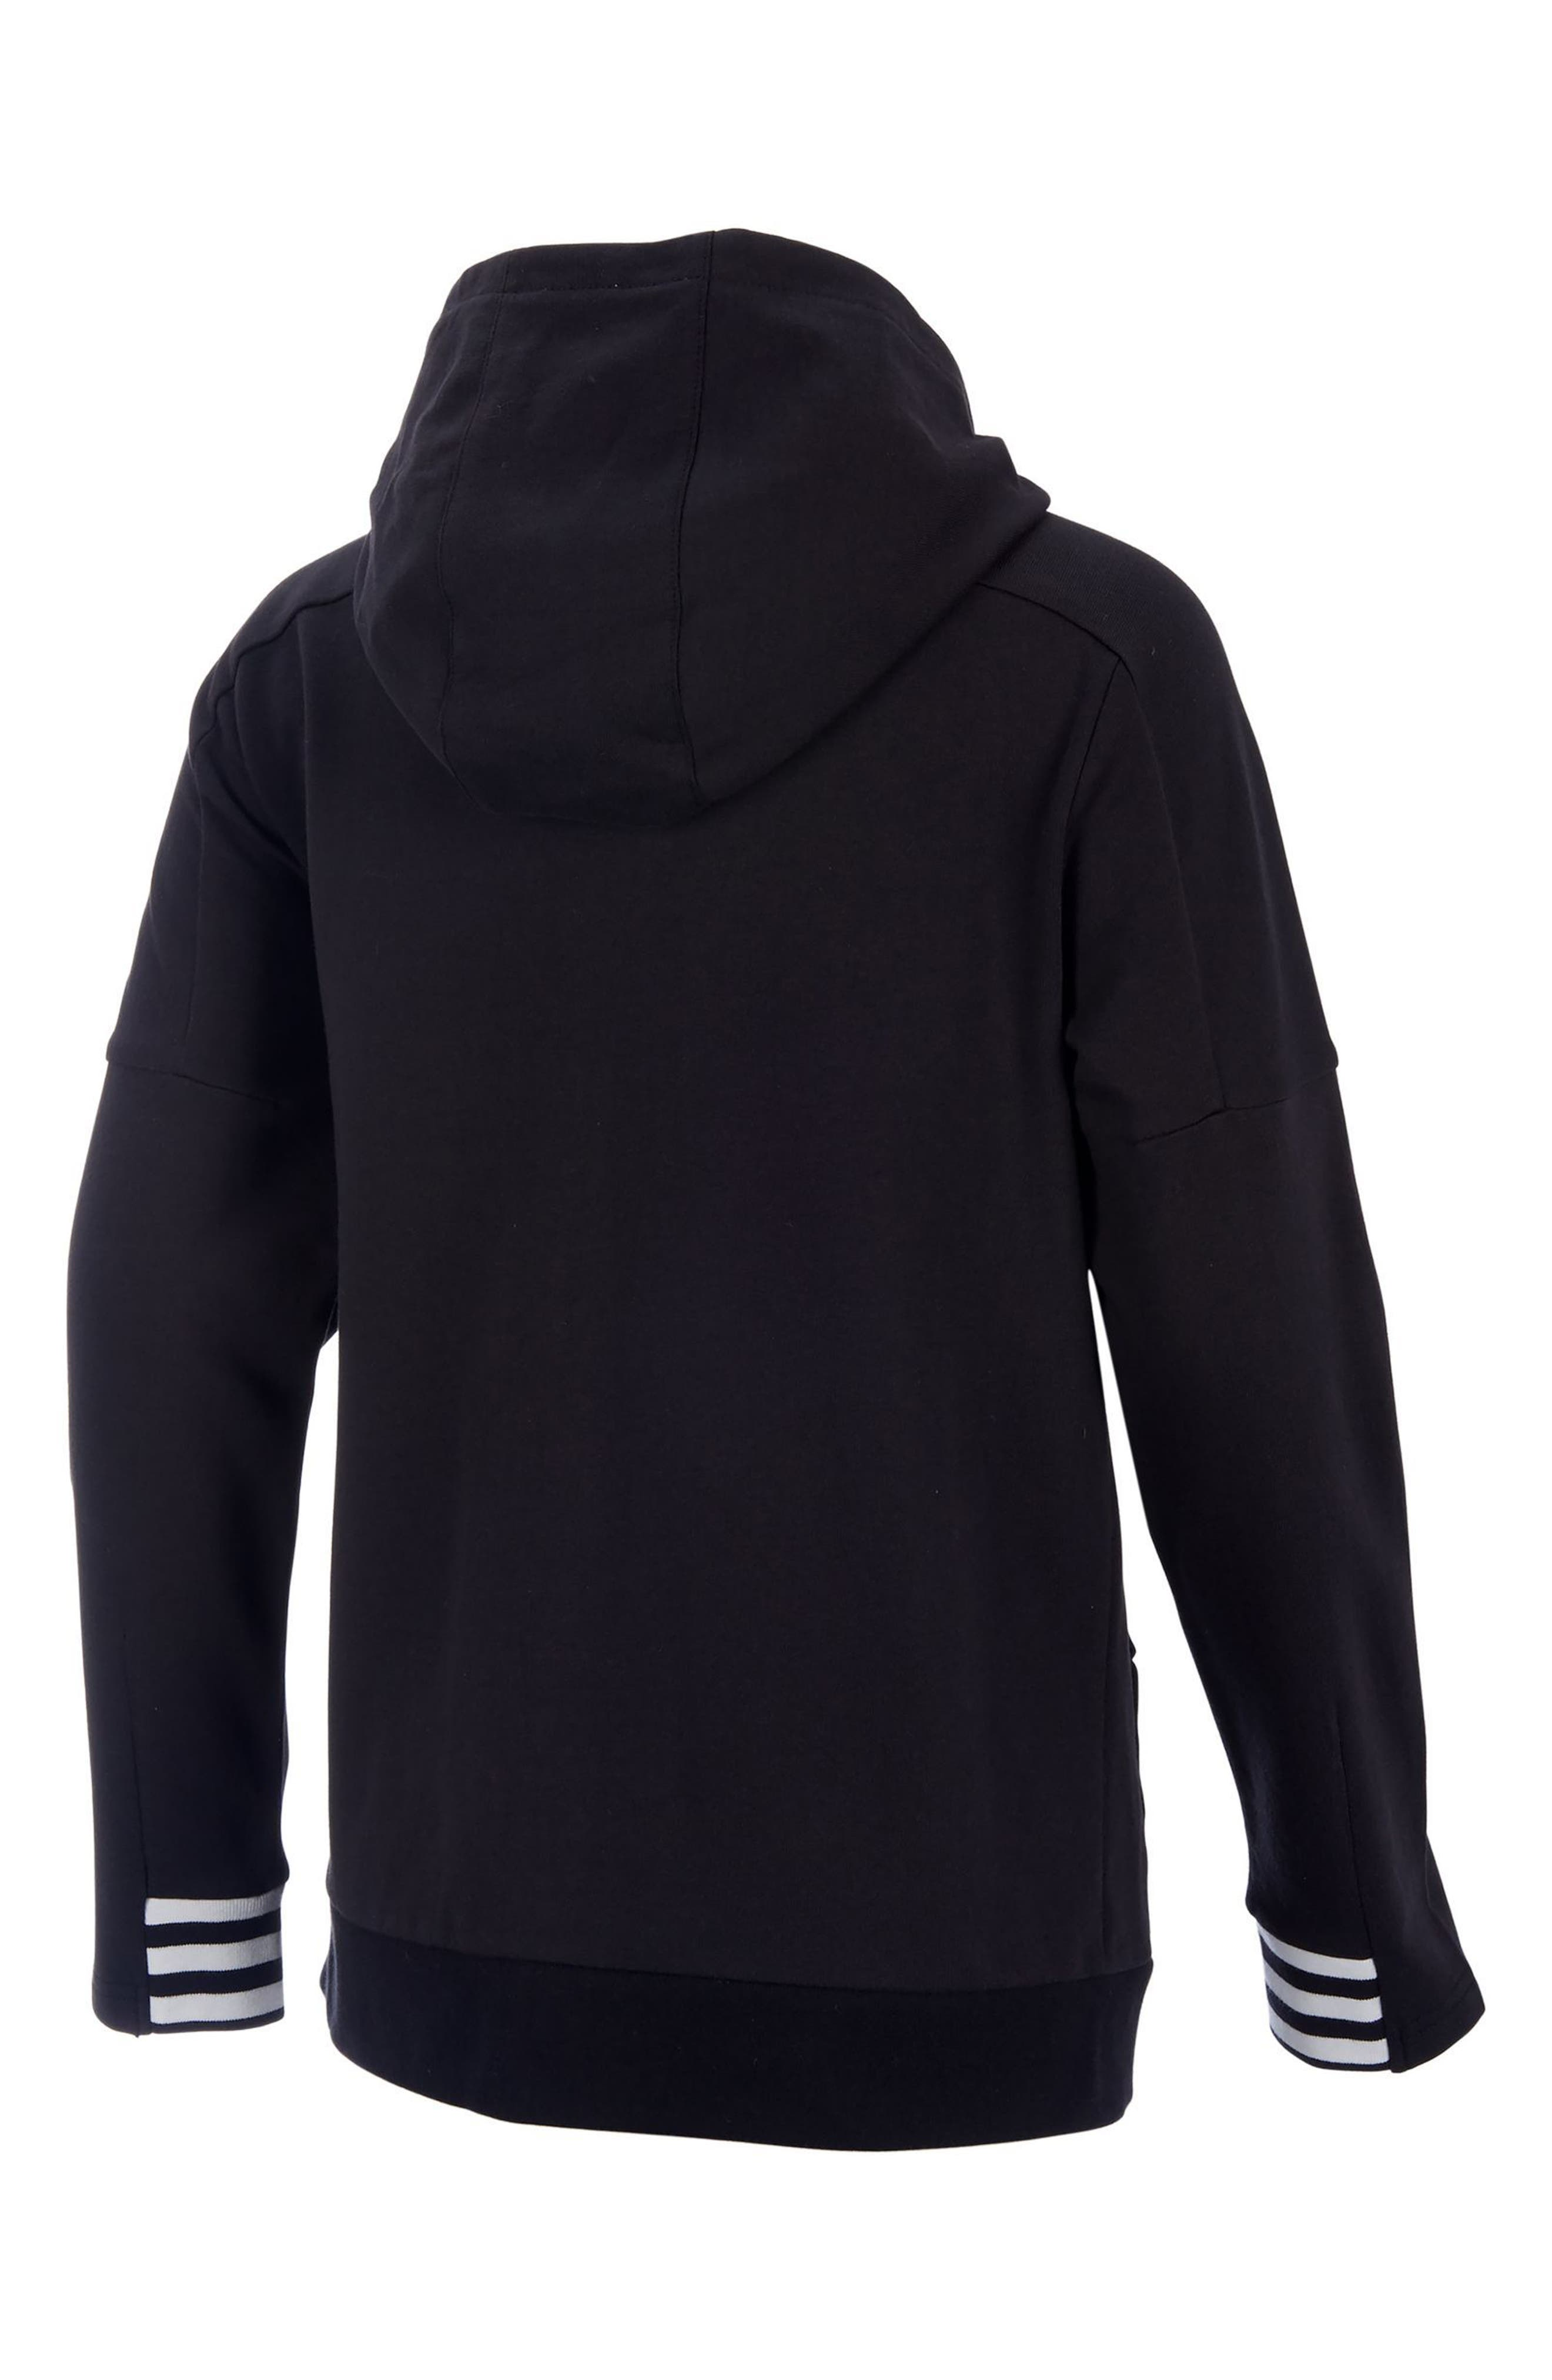 Classic Athletics Zip Hoodie,                             Alternate thumbnail 2, color,                             001